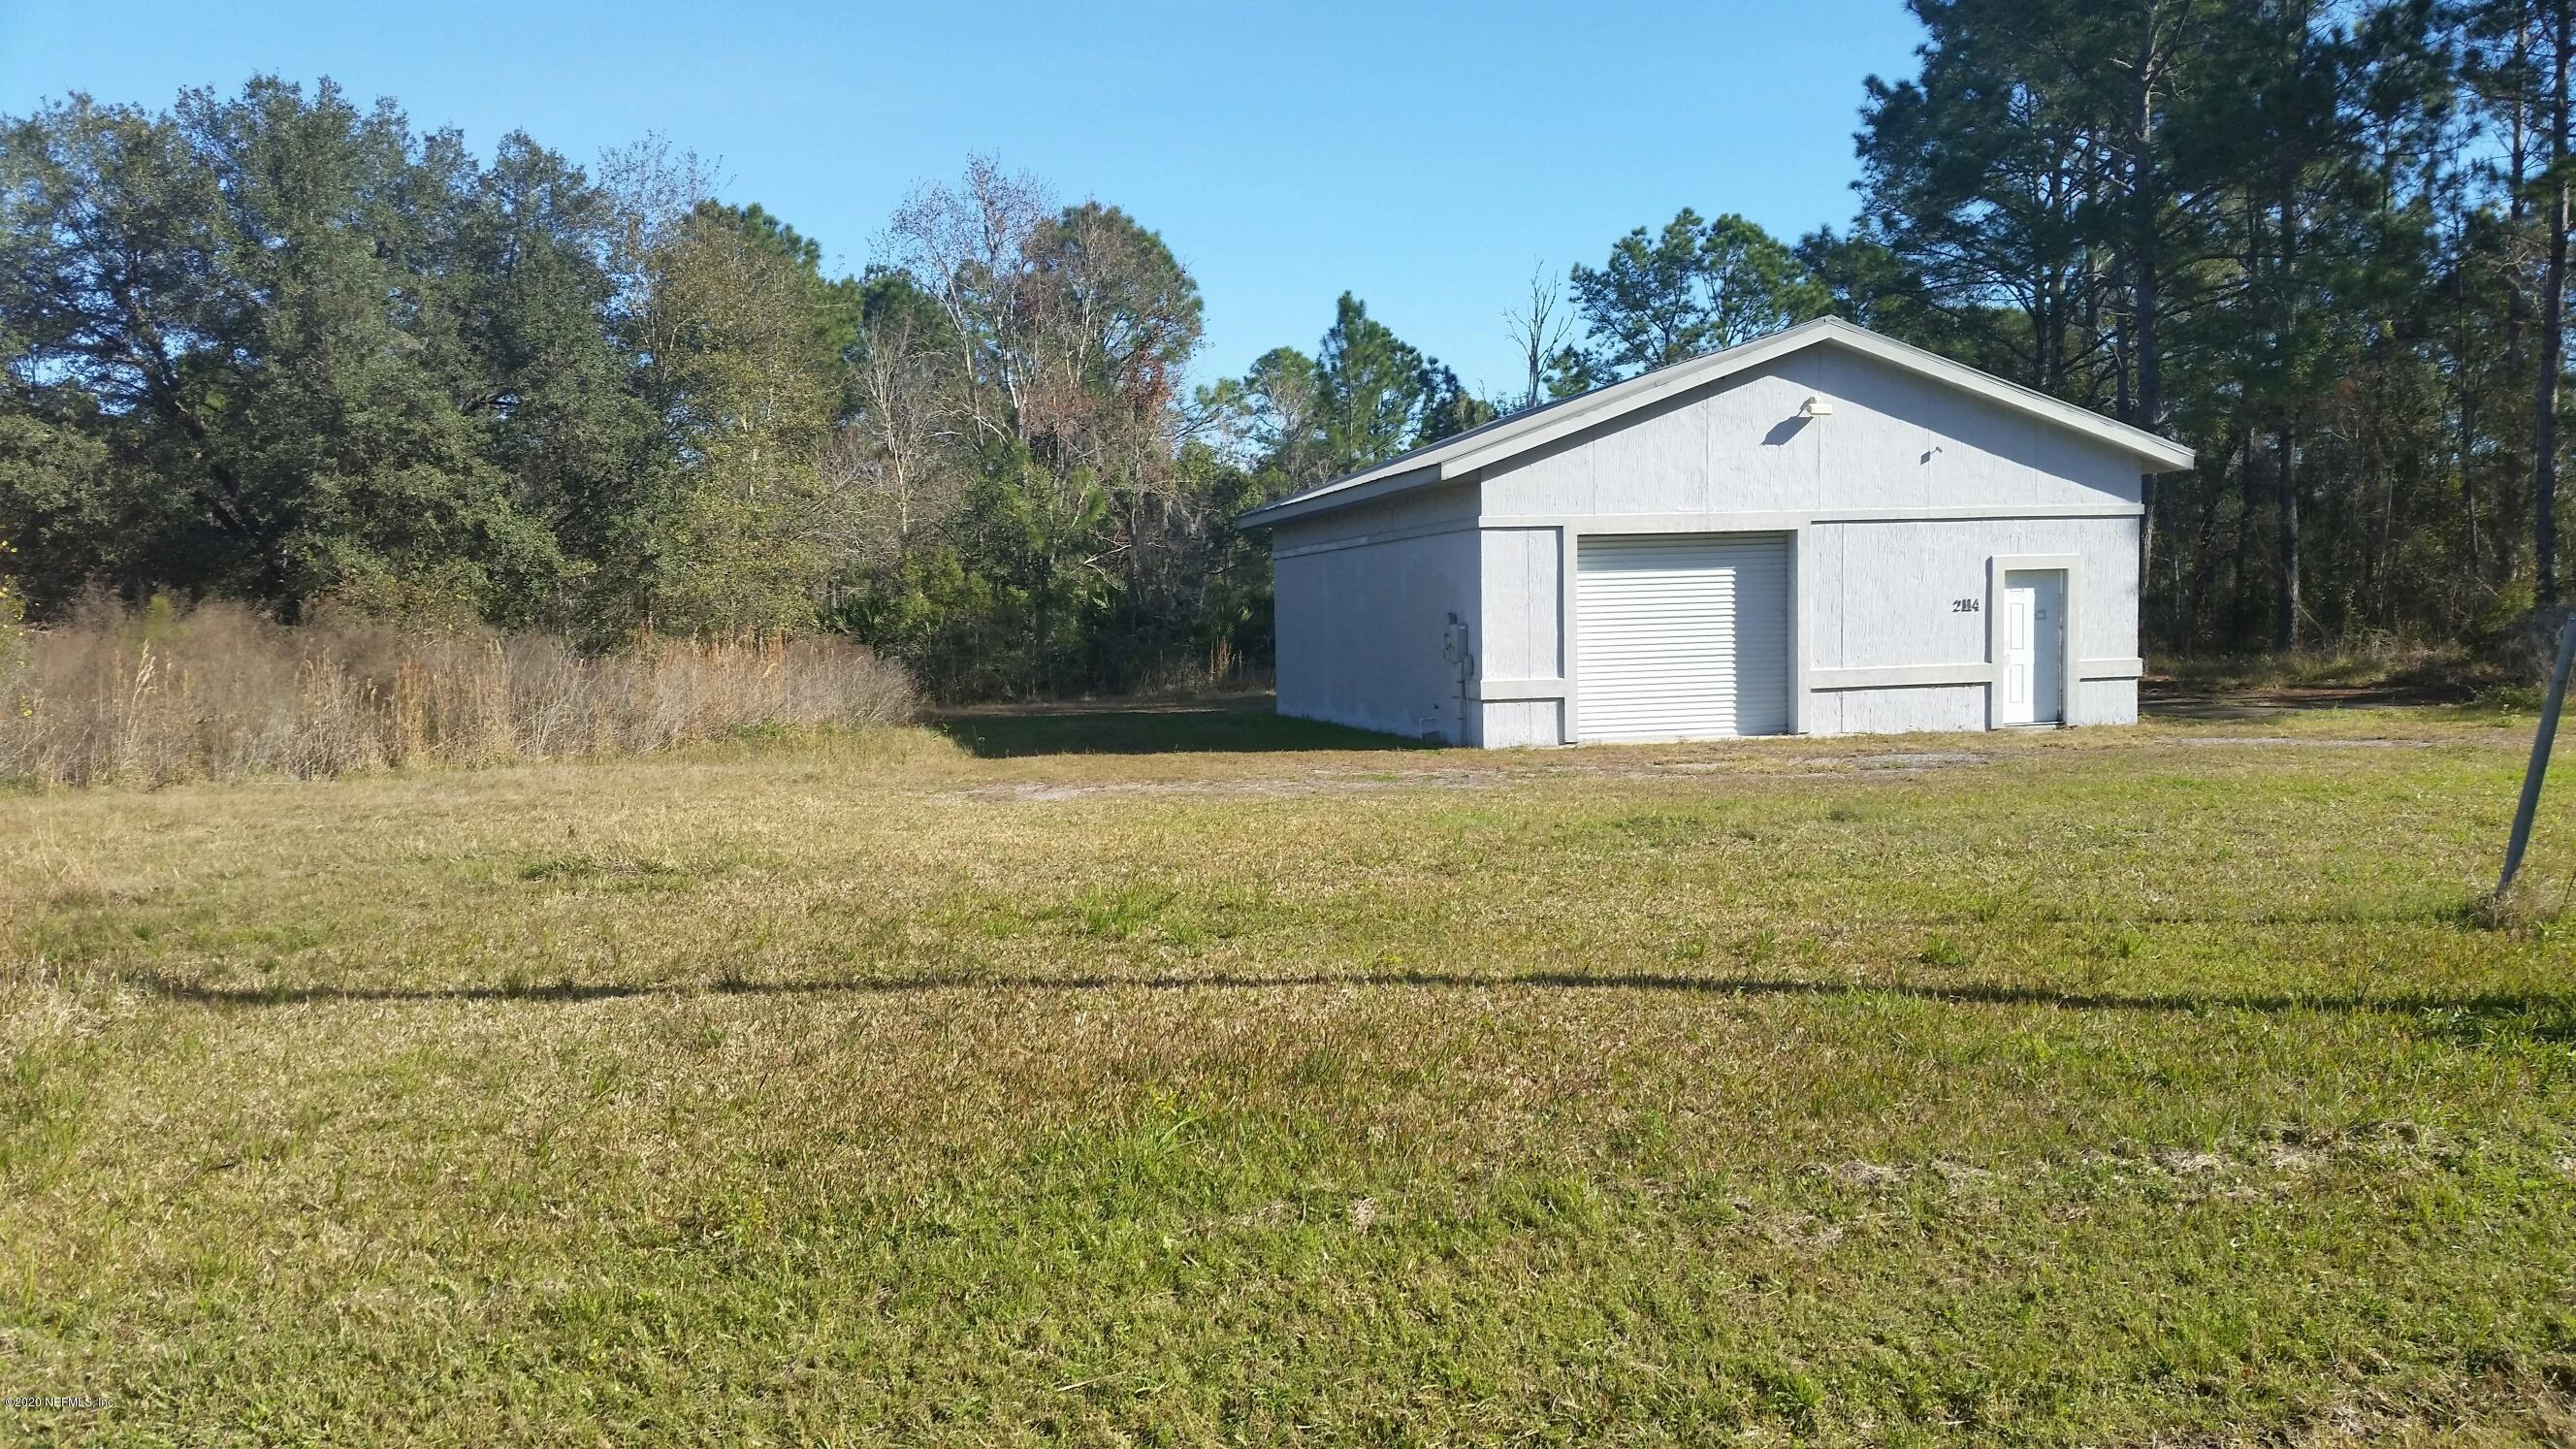 2114 HIGHWAY 17, CRESCENT CITY, FLORIDA 32112, ,Commercial,For sale,HIGHWAY 17,1036324